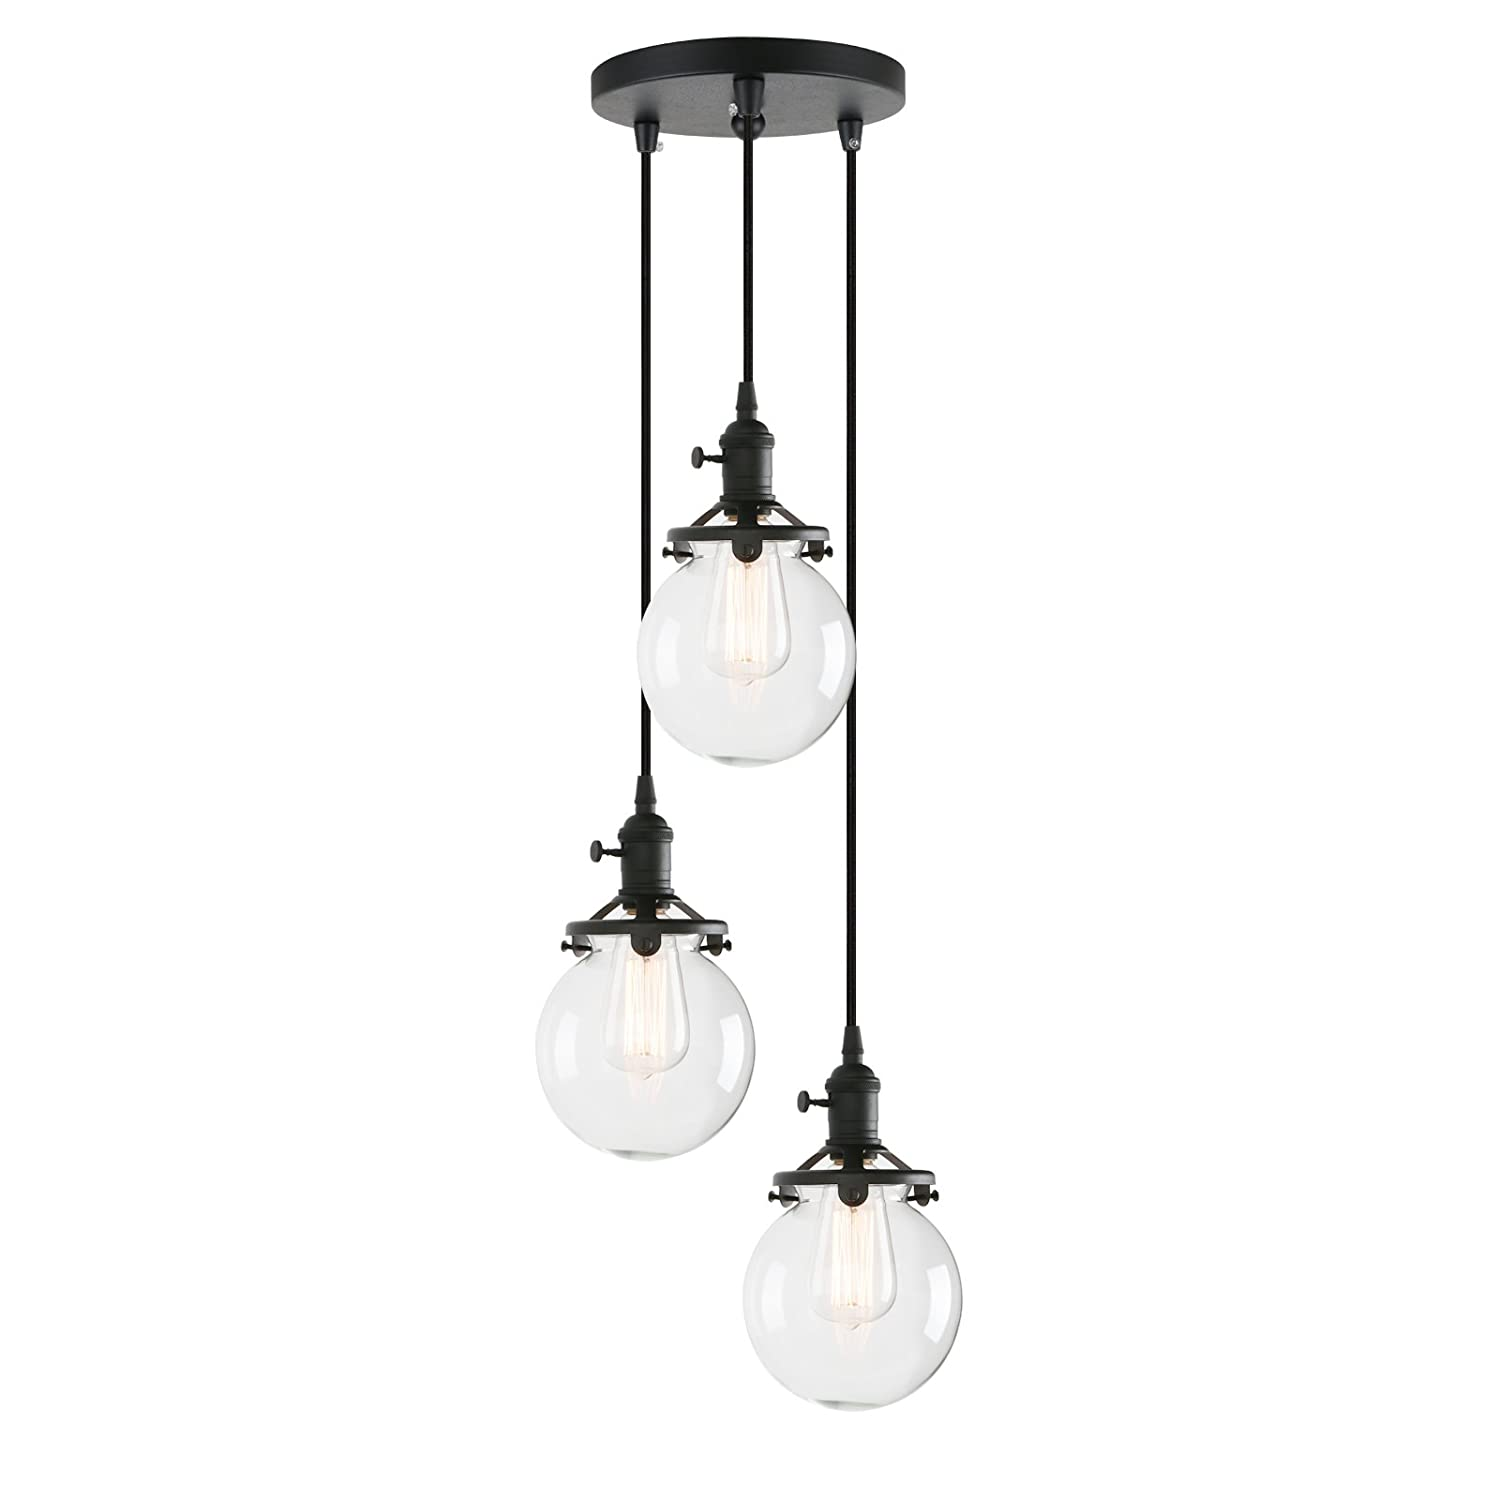 Pathson island chandelier pendant lighting fixtures 3 lights vintage style globe clear glass shade indoor hanging lights black amazon com